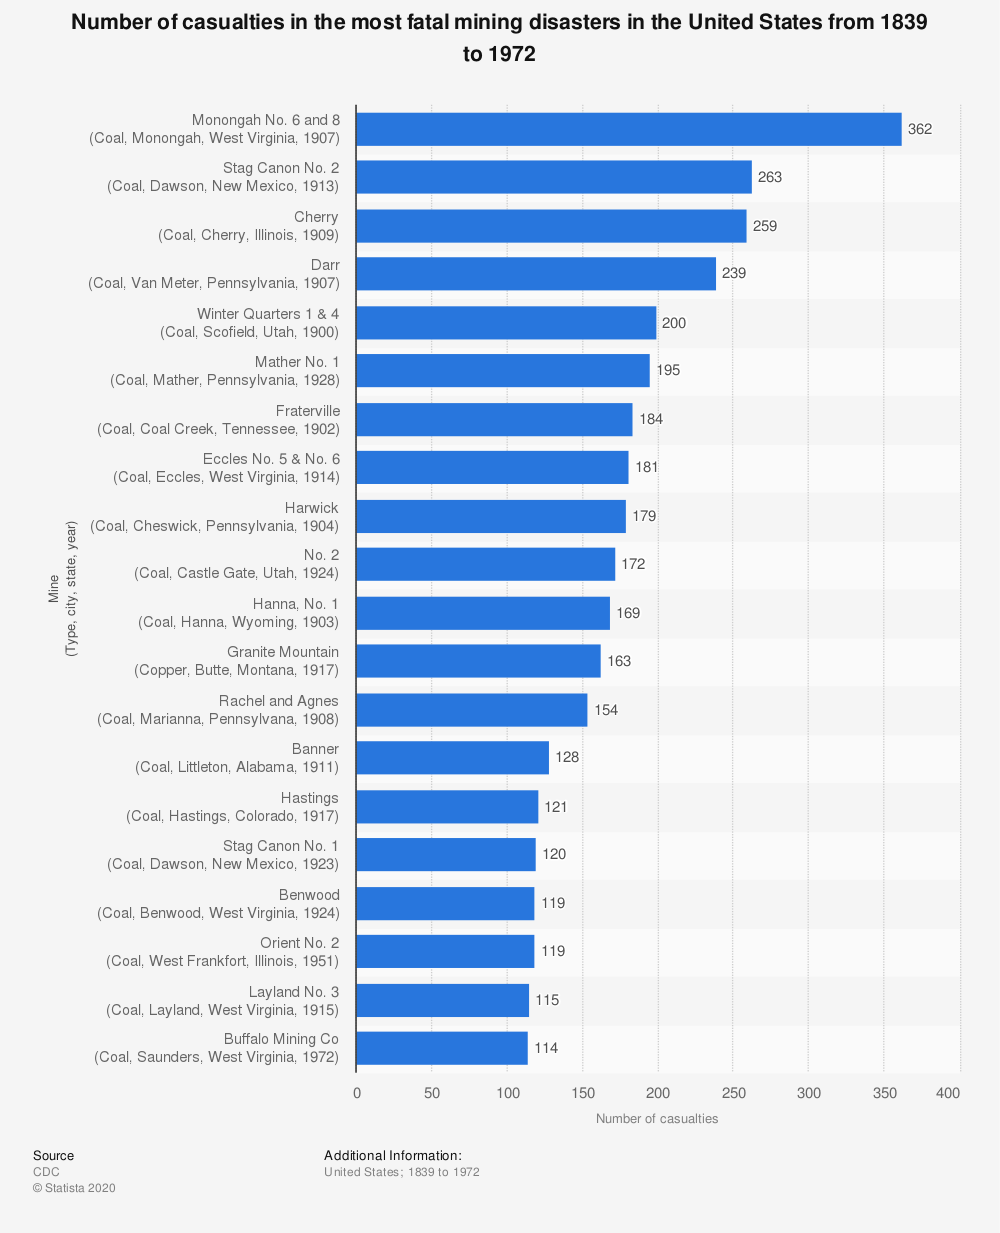 Statistic: Number of casualties in the most fatal mining disasters in the United States from 1839 to 1972 | Statista